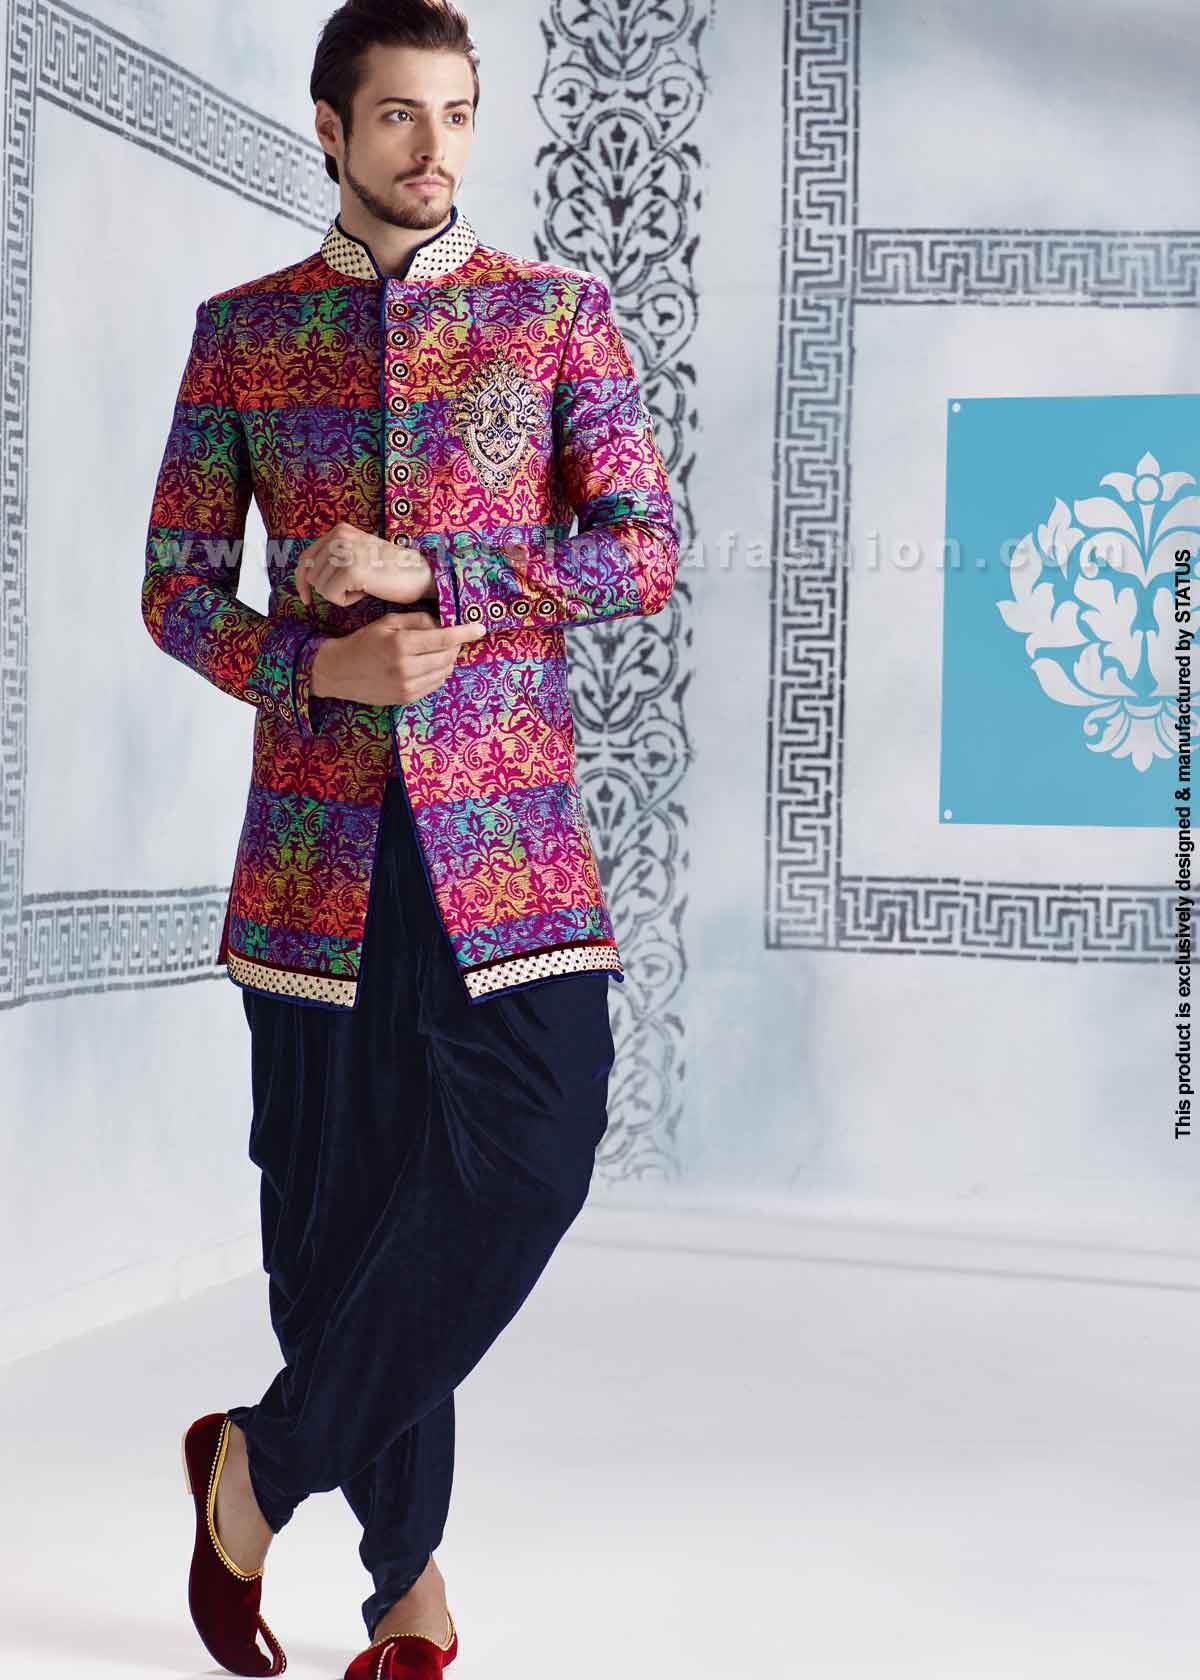 Velvet sherwani indian wedding wear groom sherwani best sherwani